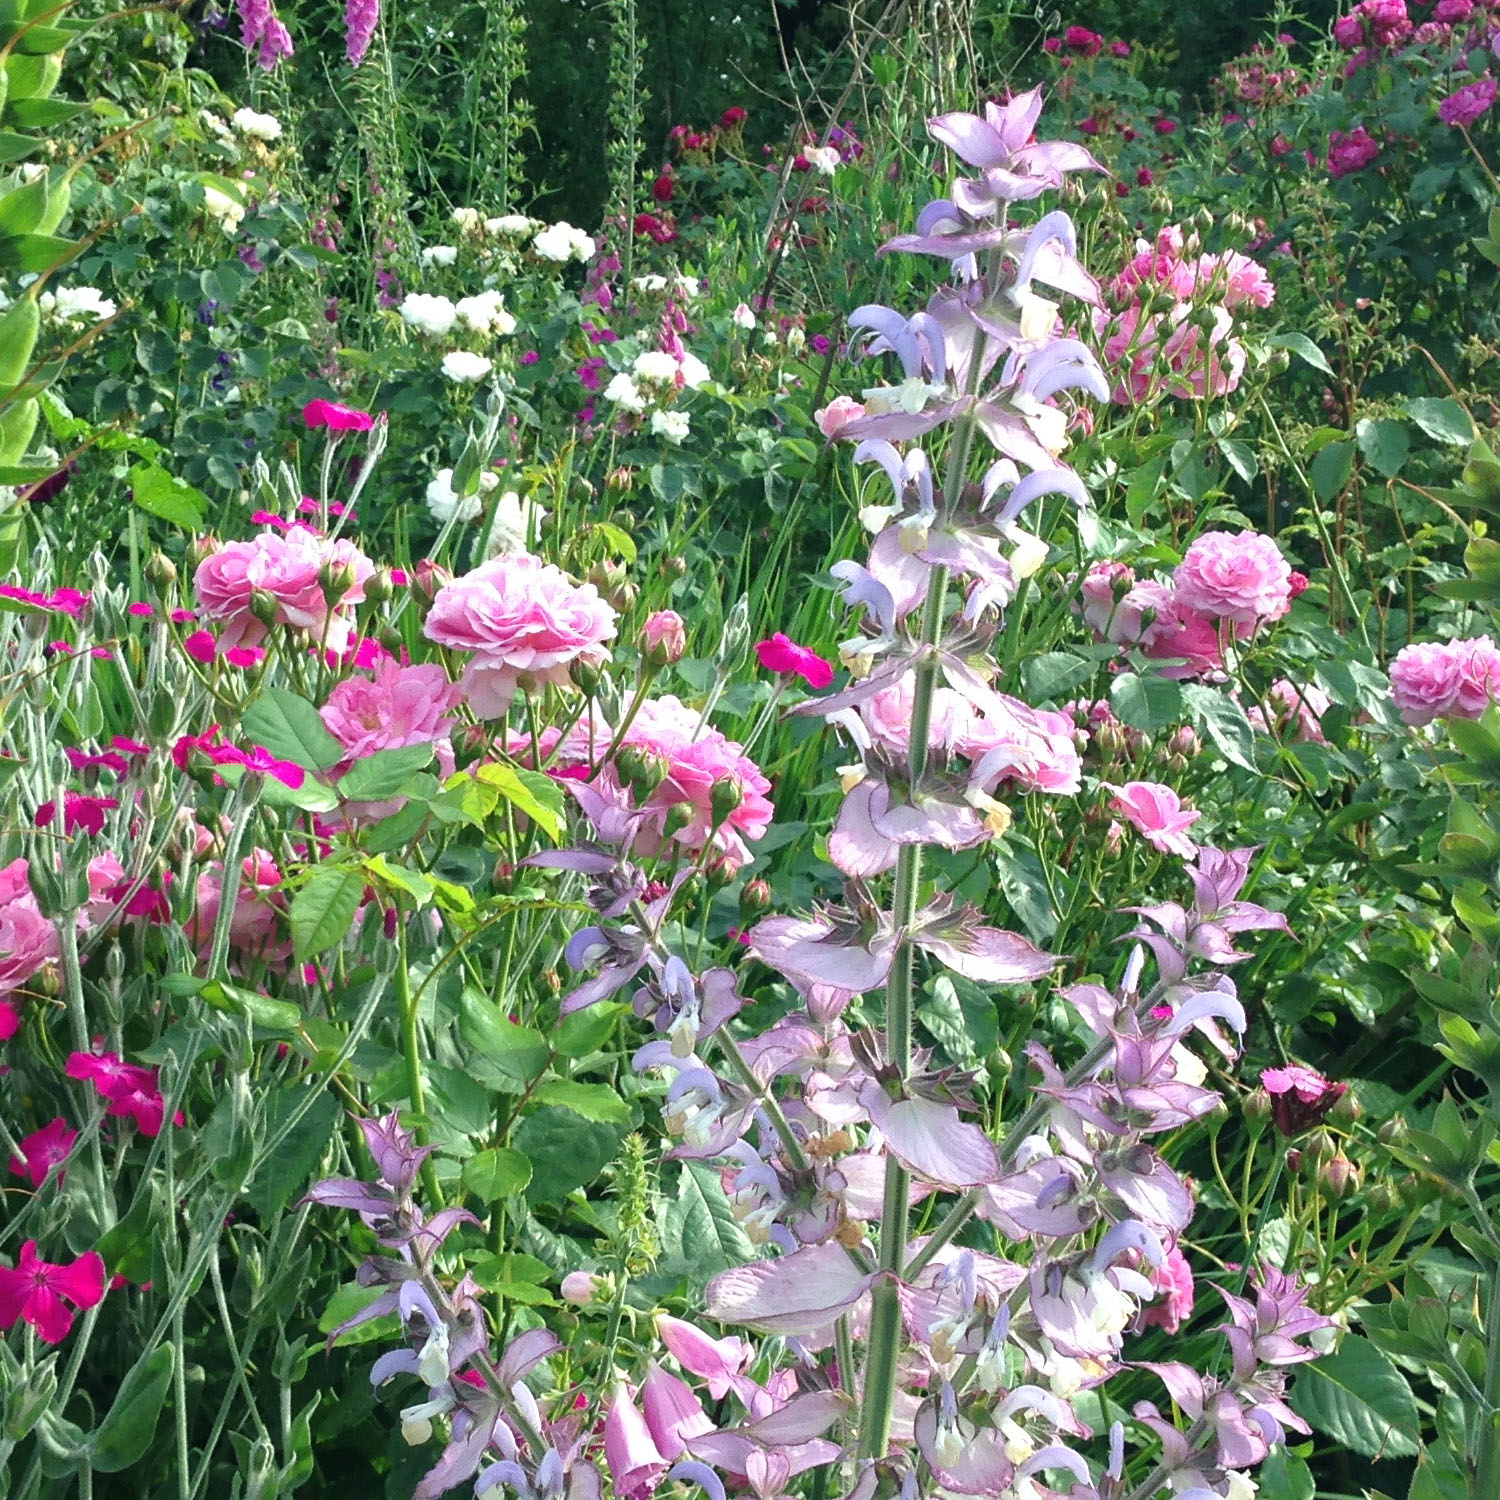 A heady mix of romantic pinks – magical planting at Sissinghurst